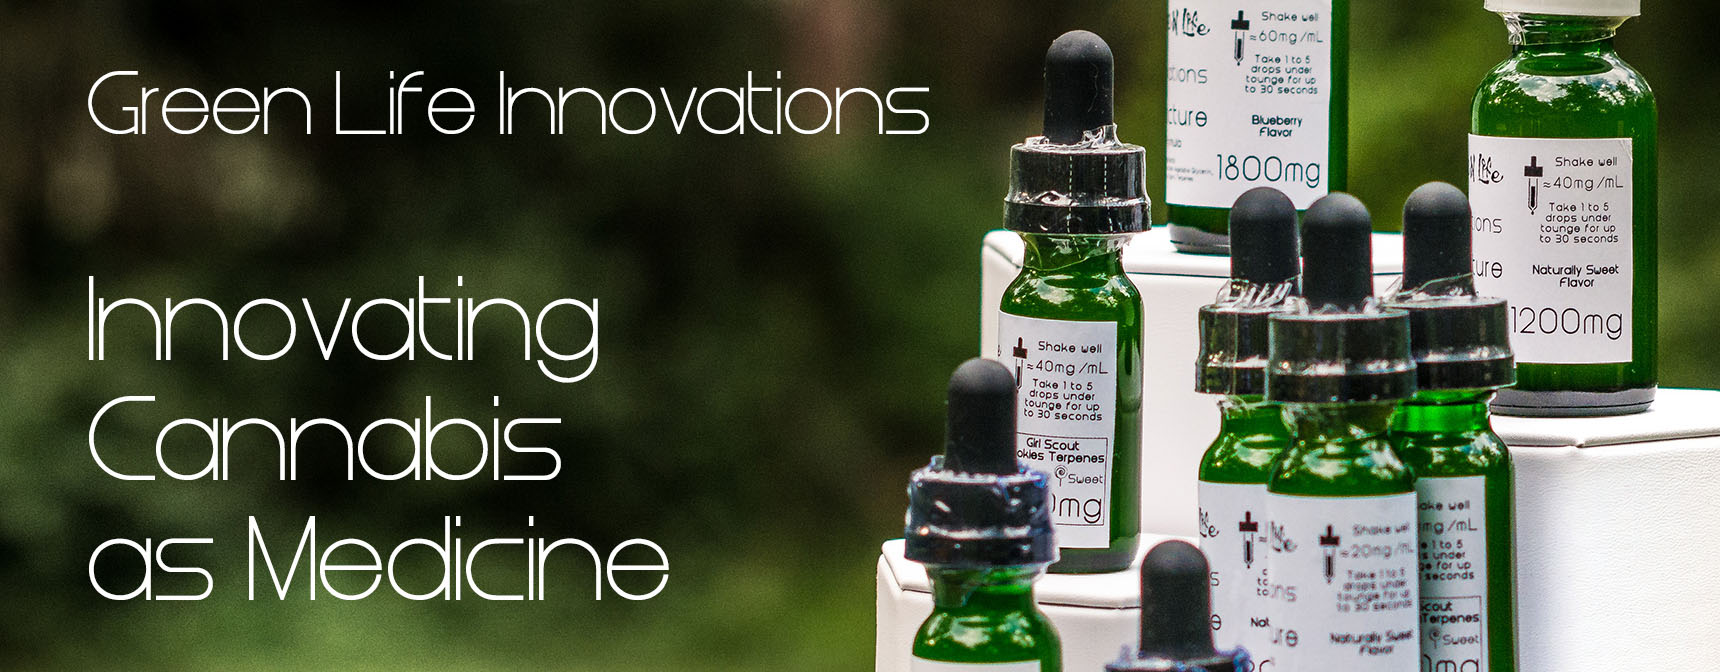 Green live Innovations mission statement